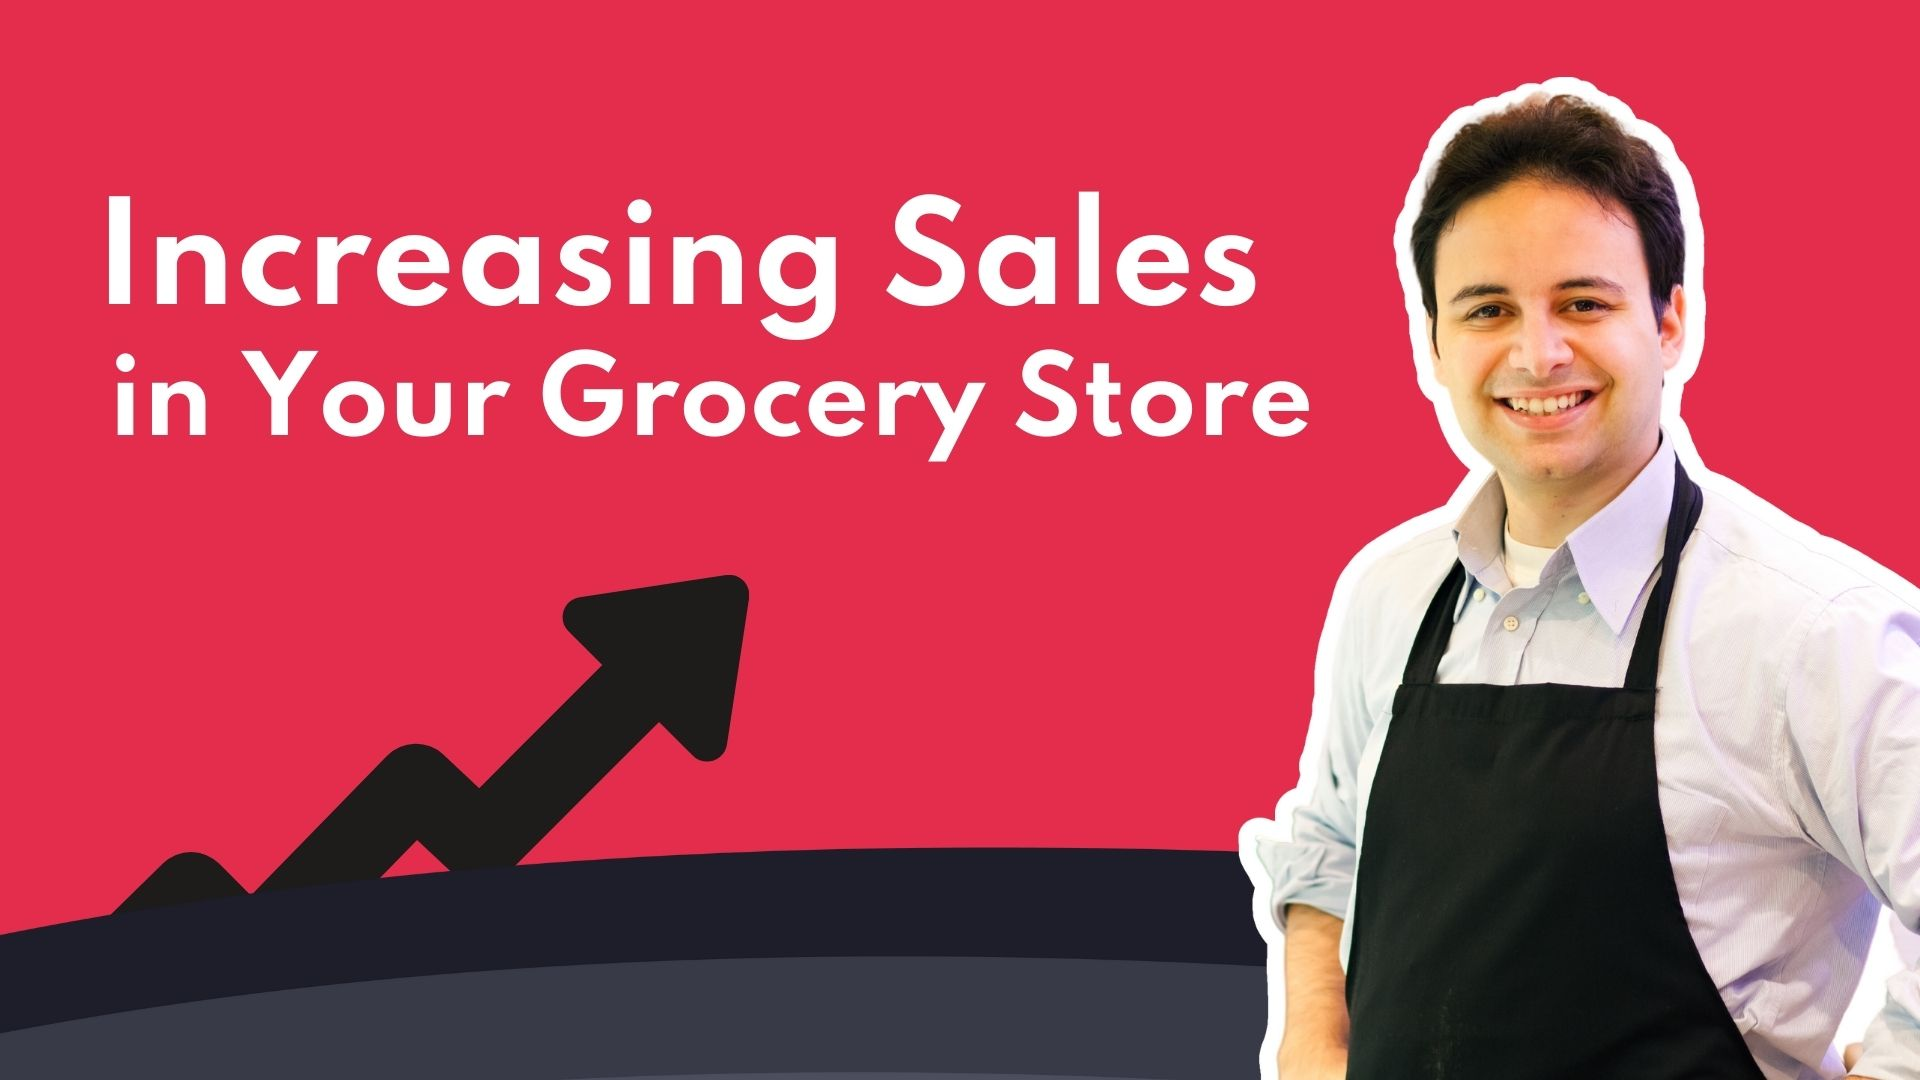 How Can I Increase Sales in My Grocery Store? Try These Methods